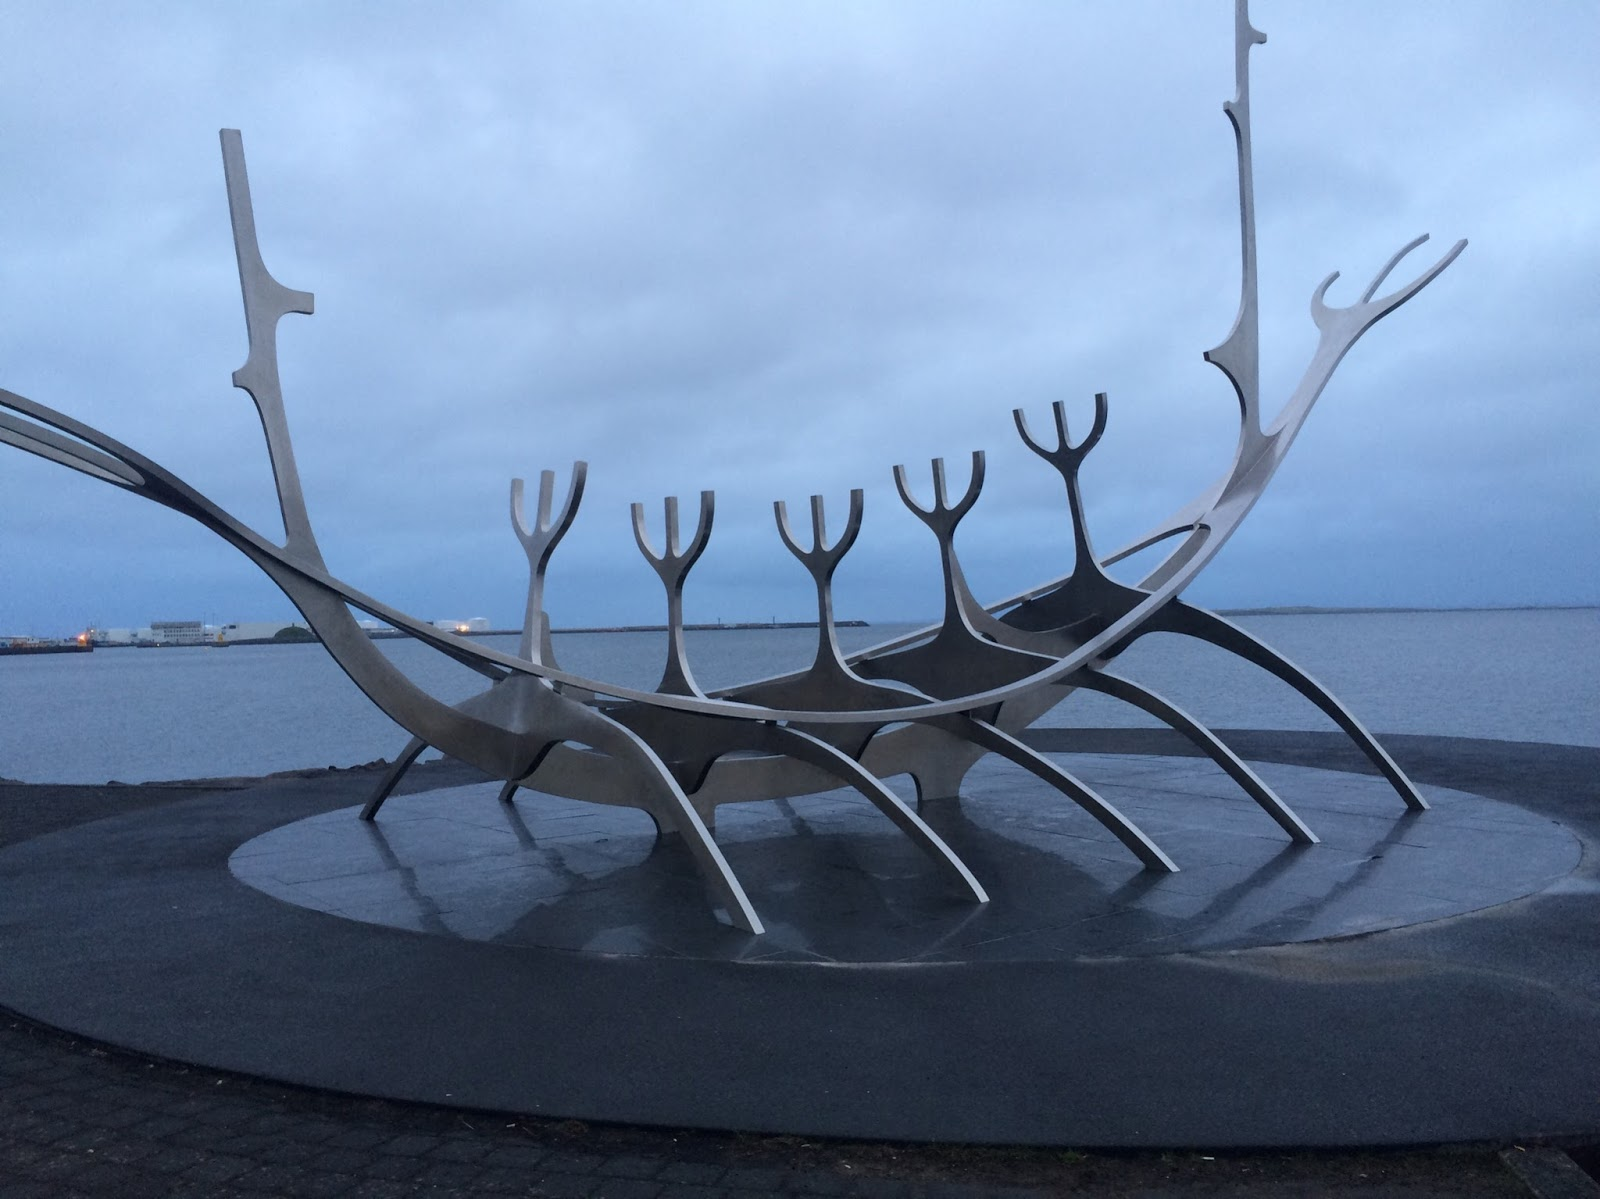 Sculpture in Reykjavik, Iceland with view on the sea